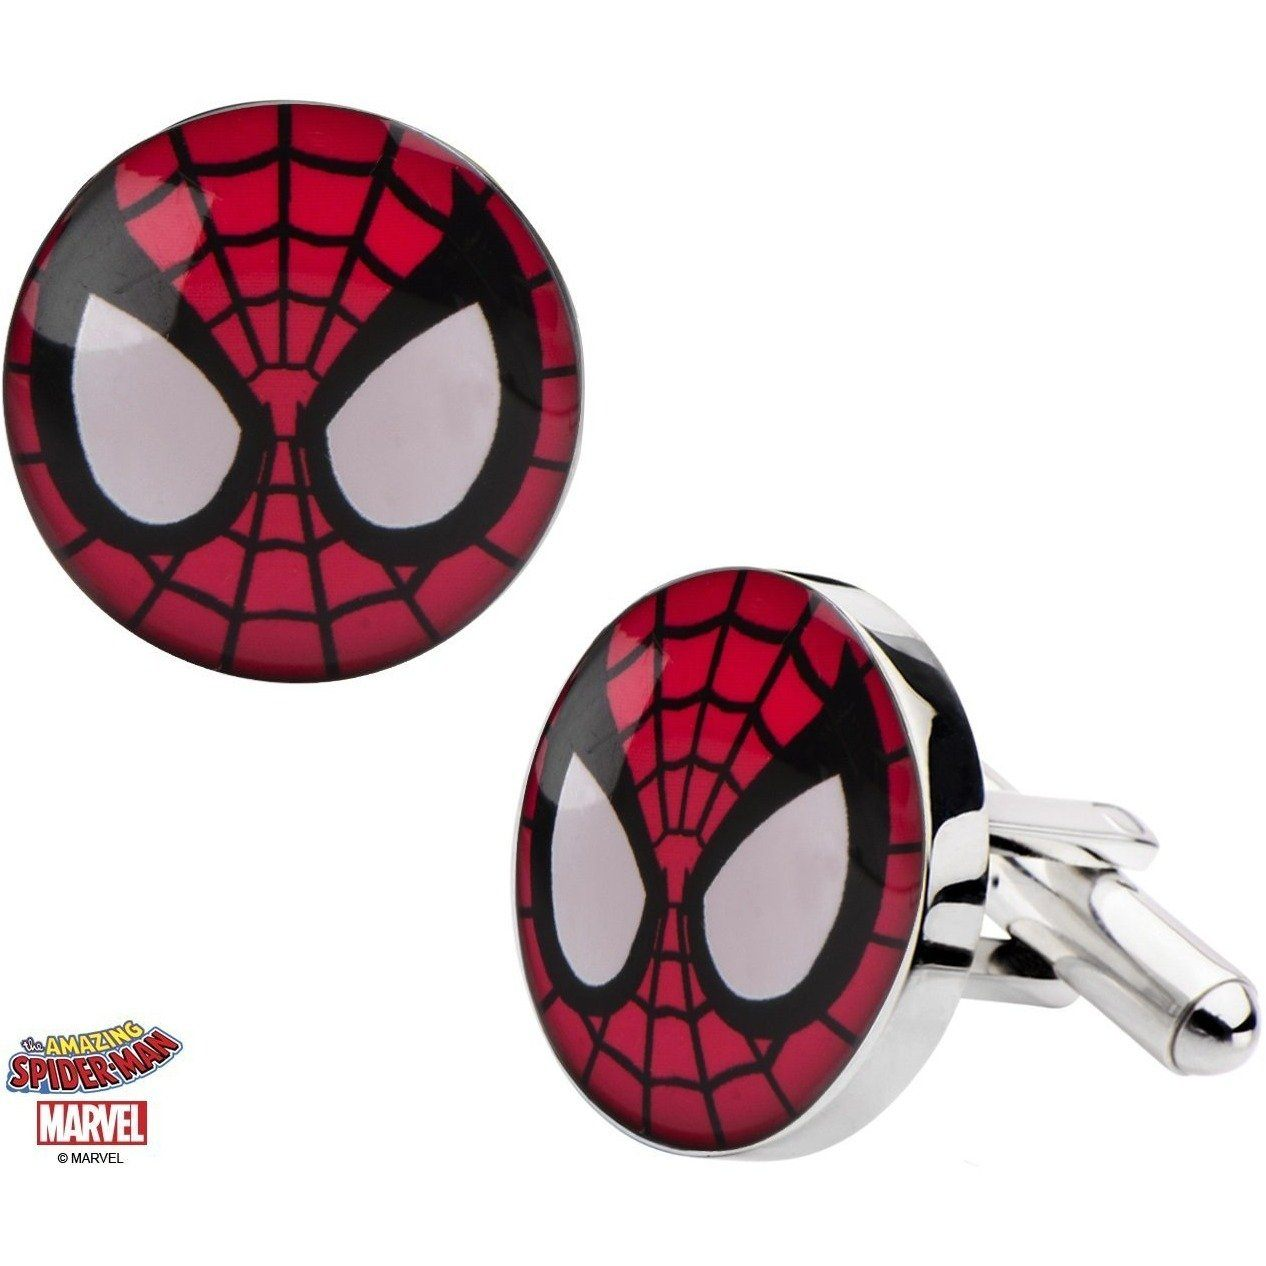 Colour Spiderman Cufflinks, Novelty Cufflinks, Cuffed.com.au, CL5858, $65.00